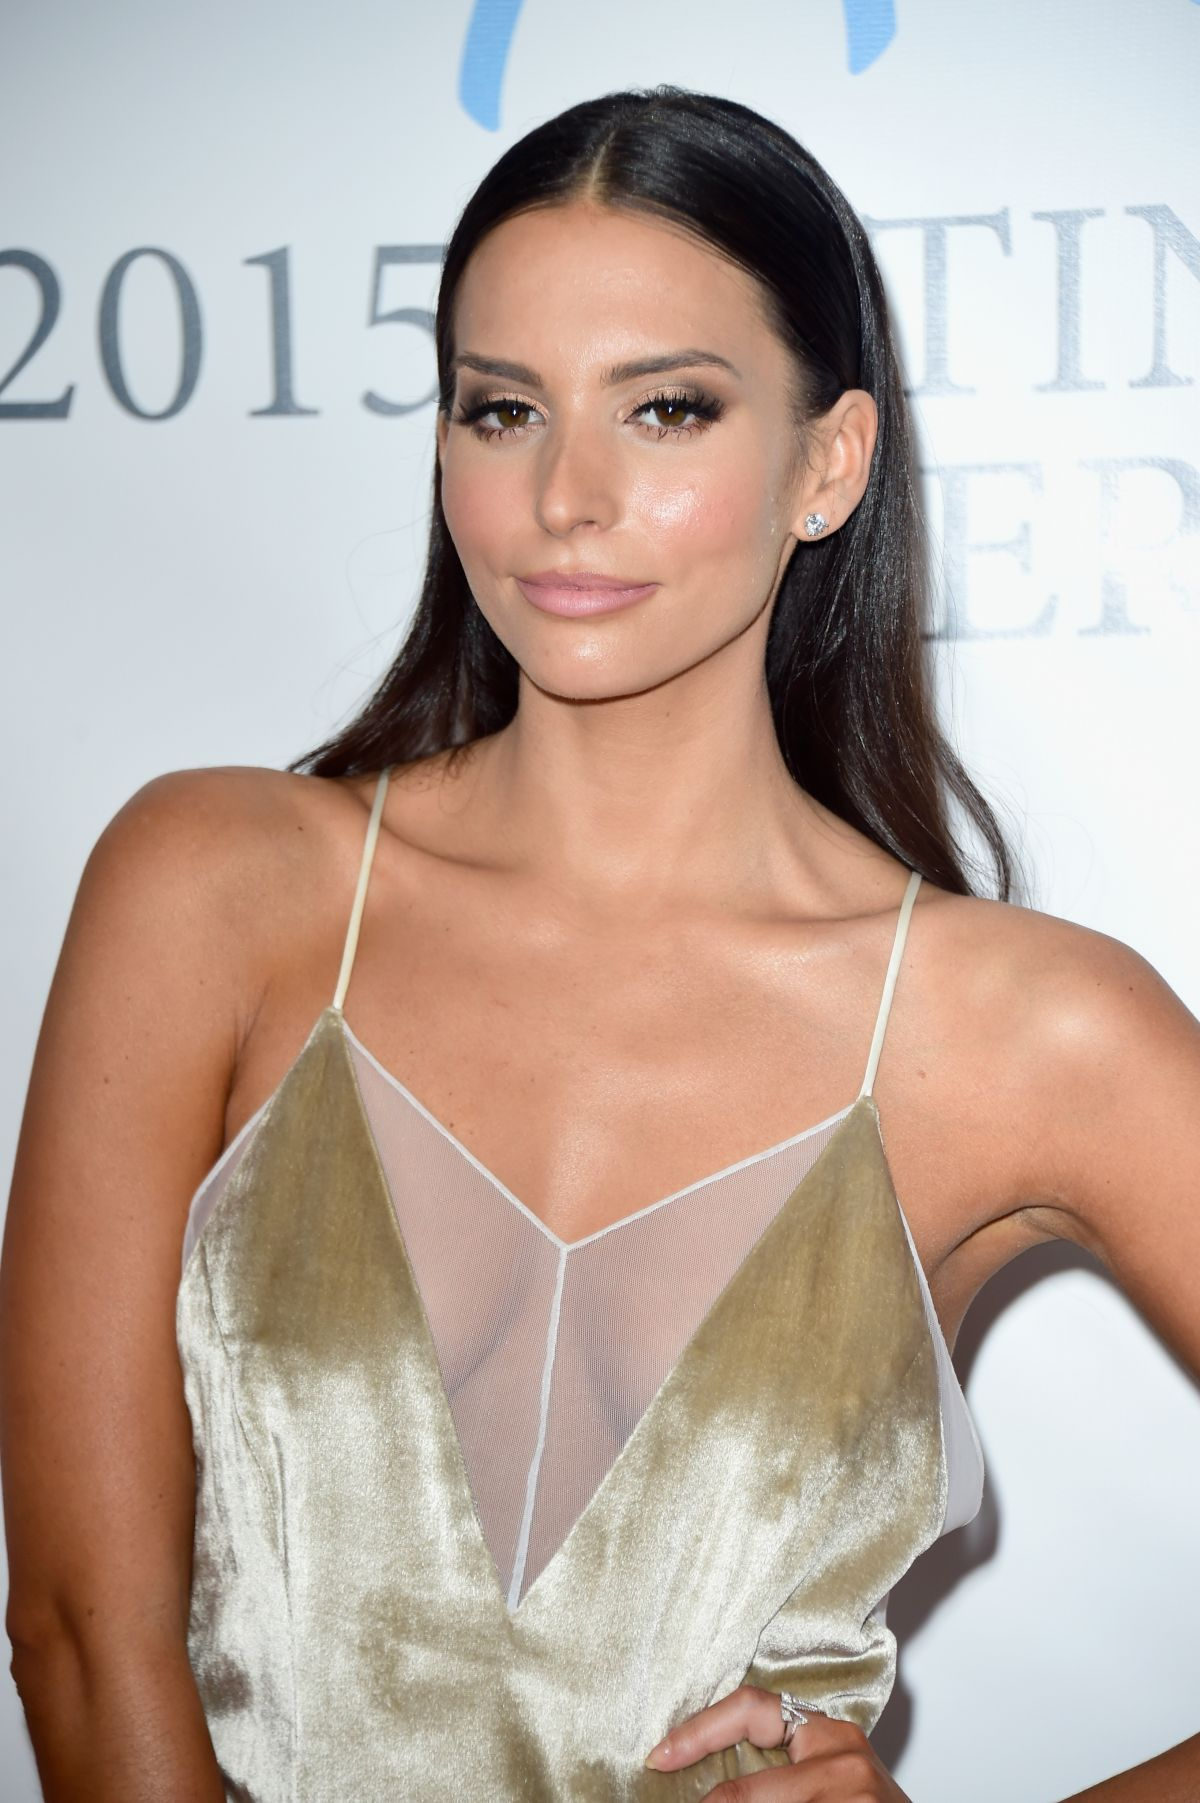 Giselle Itié Naked with regard to genesis rodriguez, soap opera actress | leaked celebs | pinterest